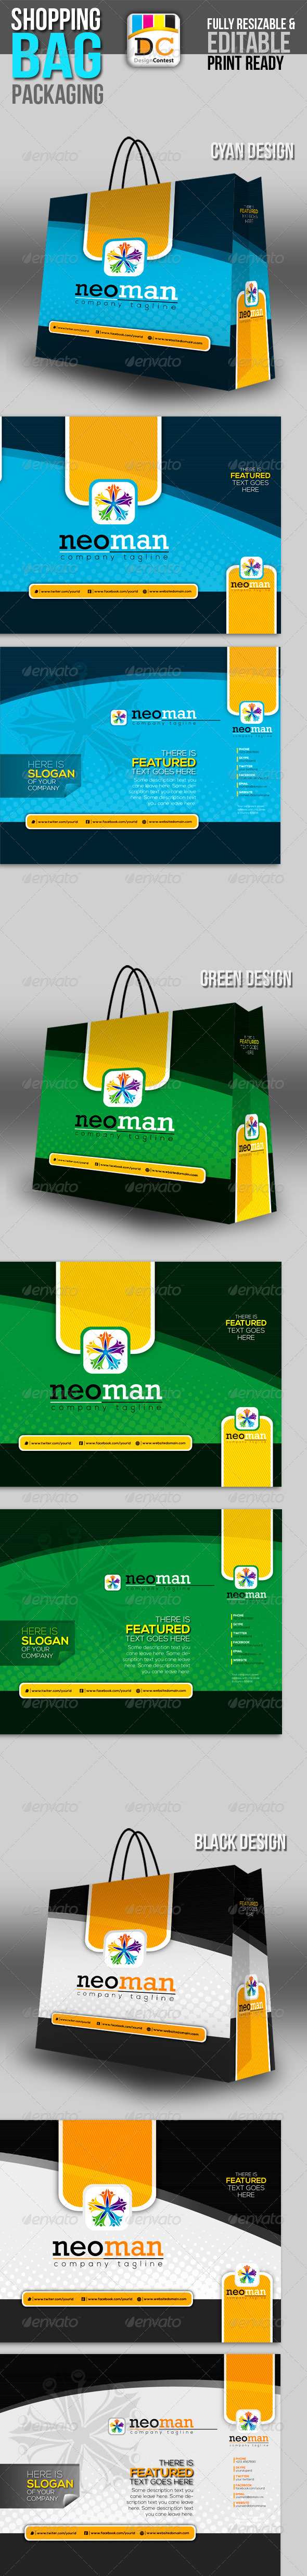 Neo Man Shopping Bag Packaging - Packaging Print Templates